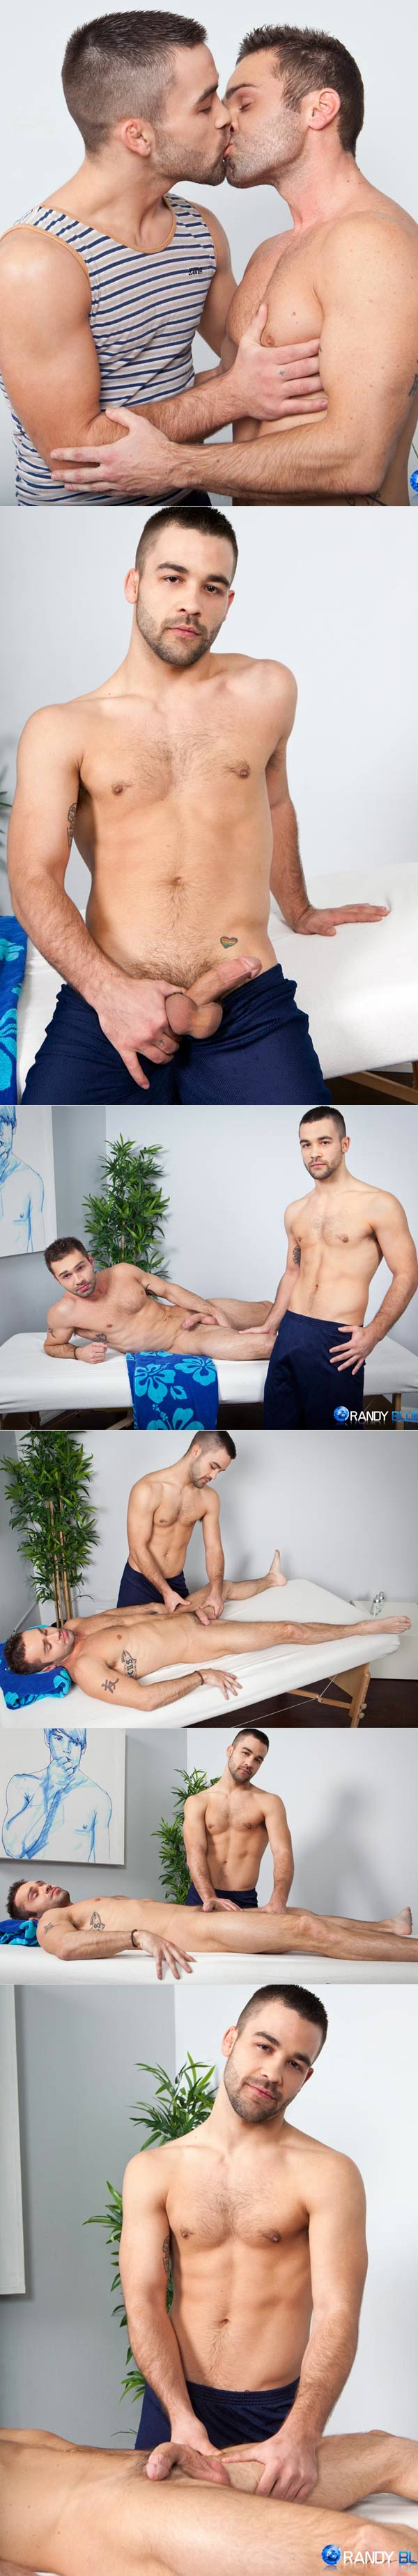 Drew Blaze & Ian Parker at RandyBlue